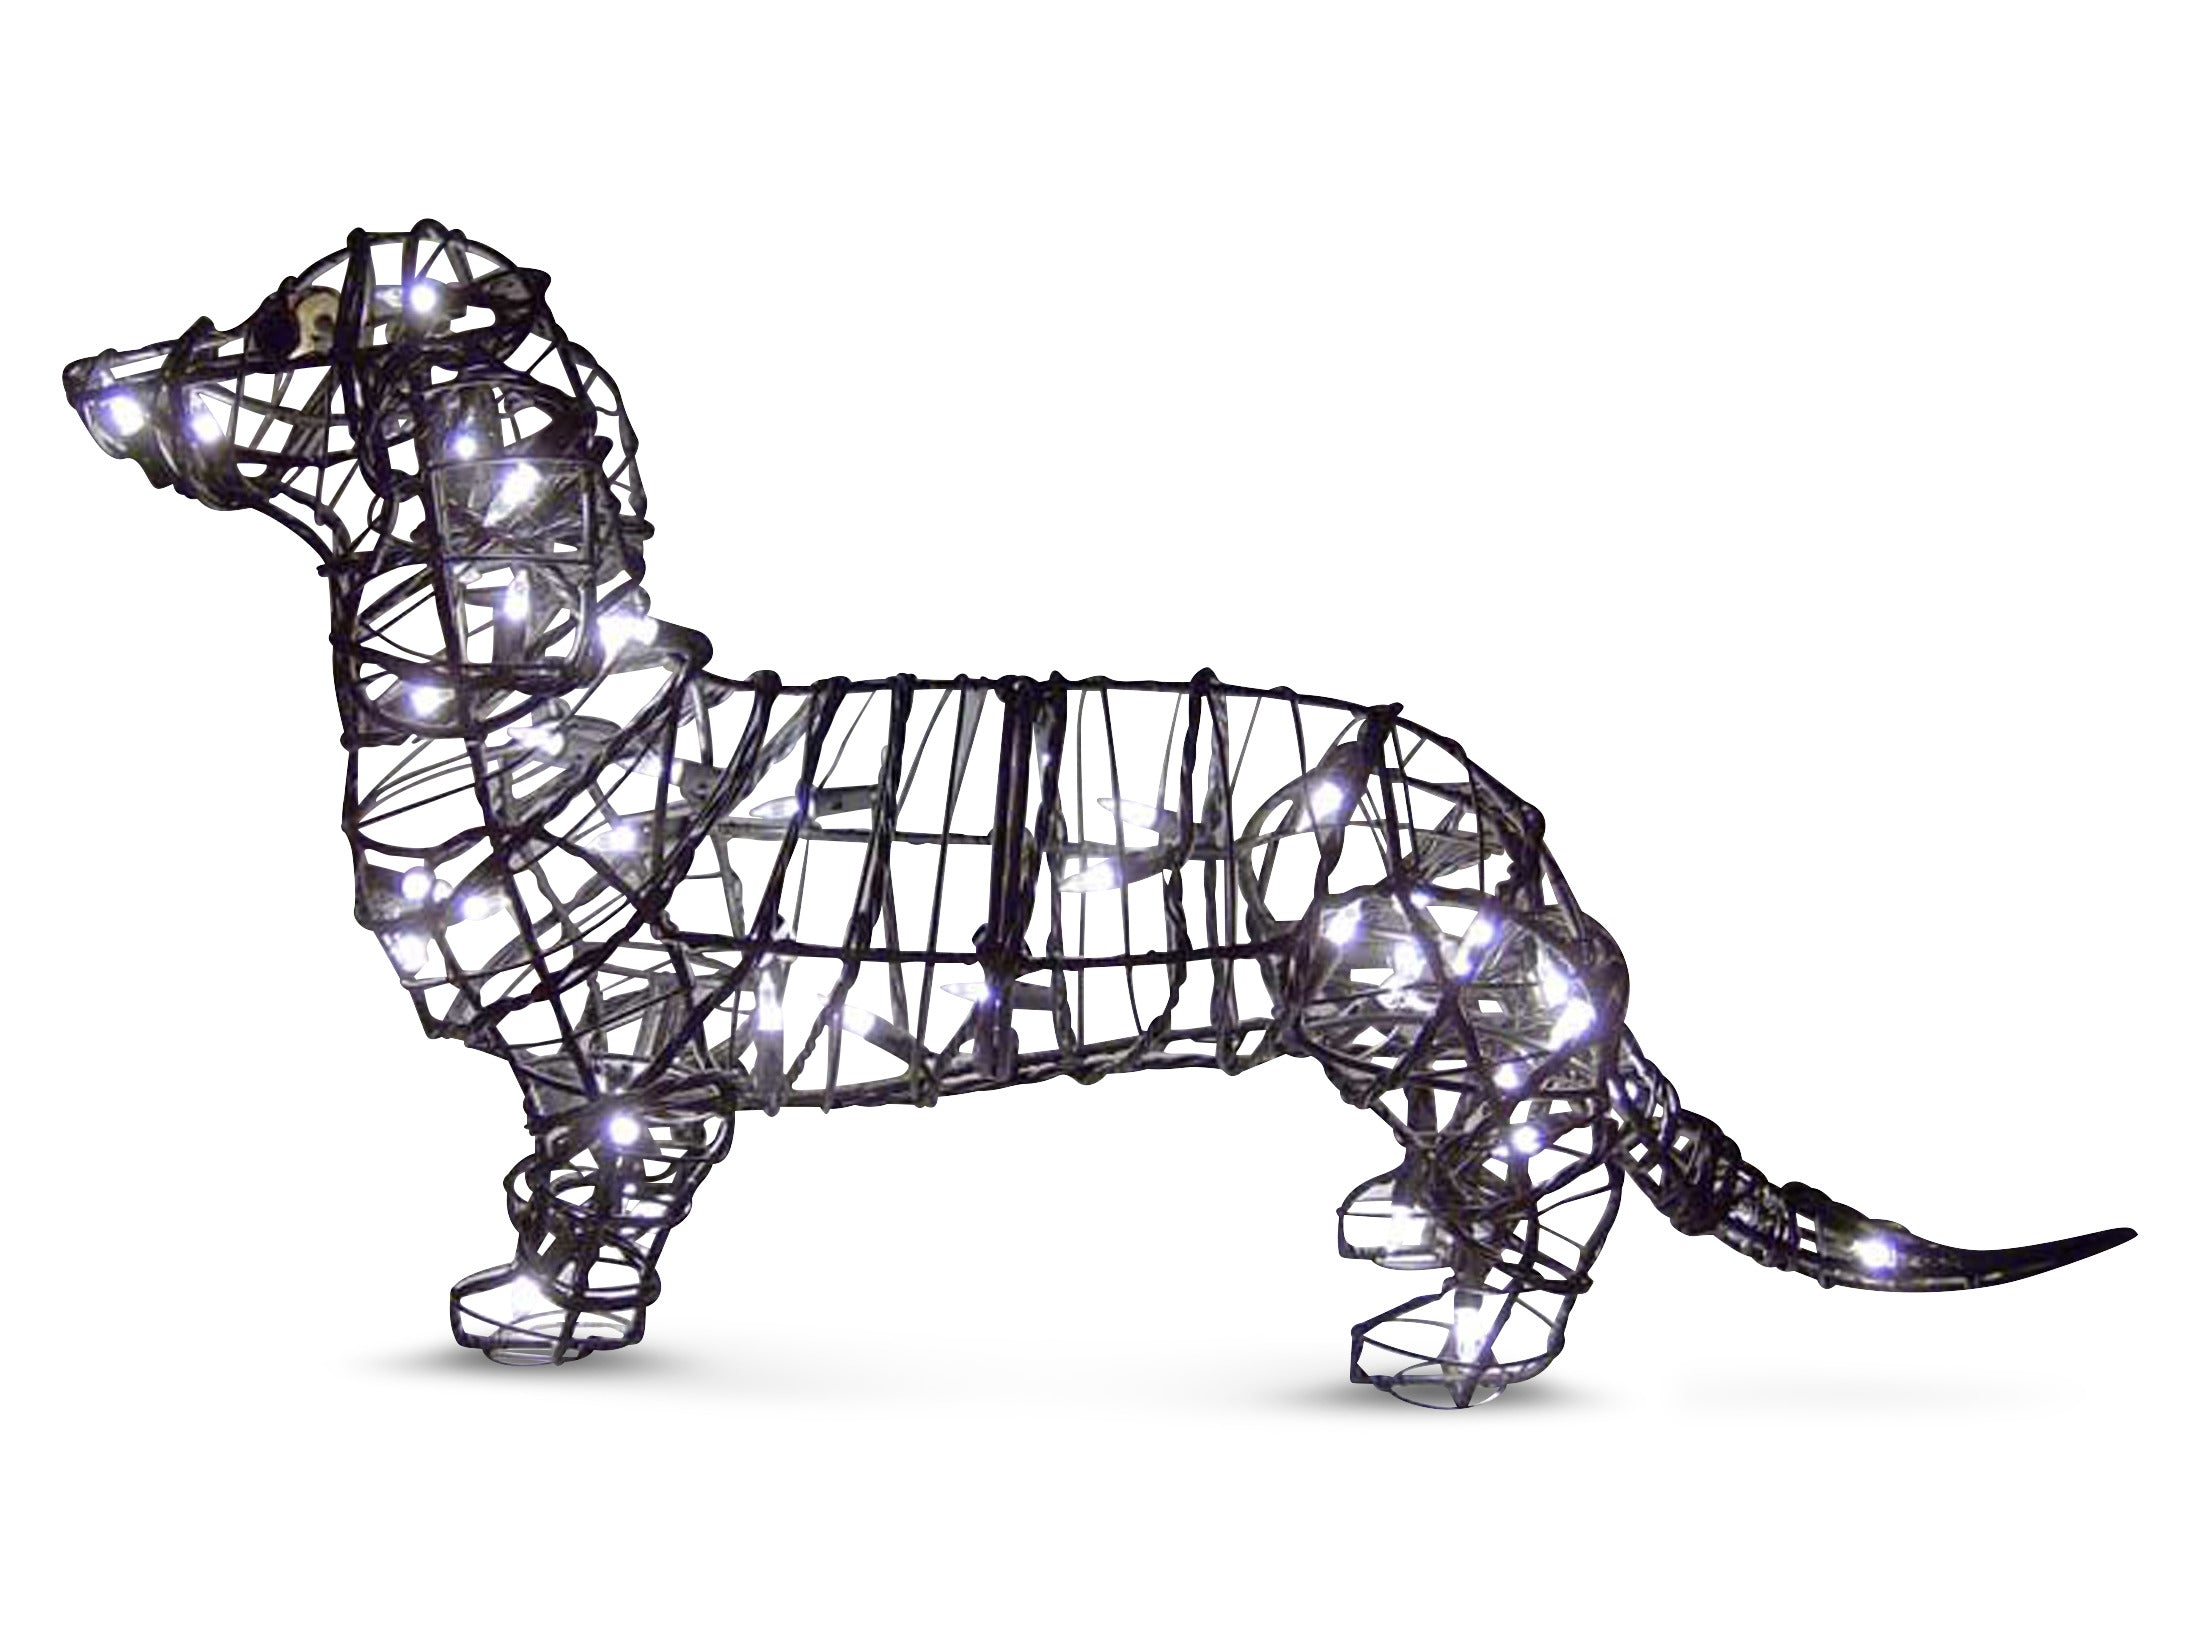 "Dachshund 25"" Topiary Sculpture - Wire Frame, Moss Filled or Lighted"